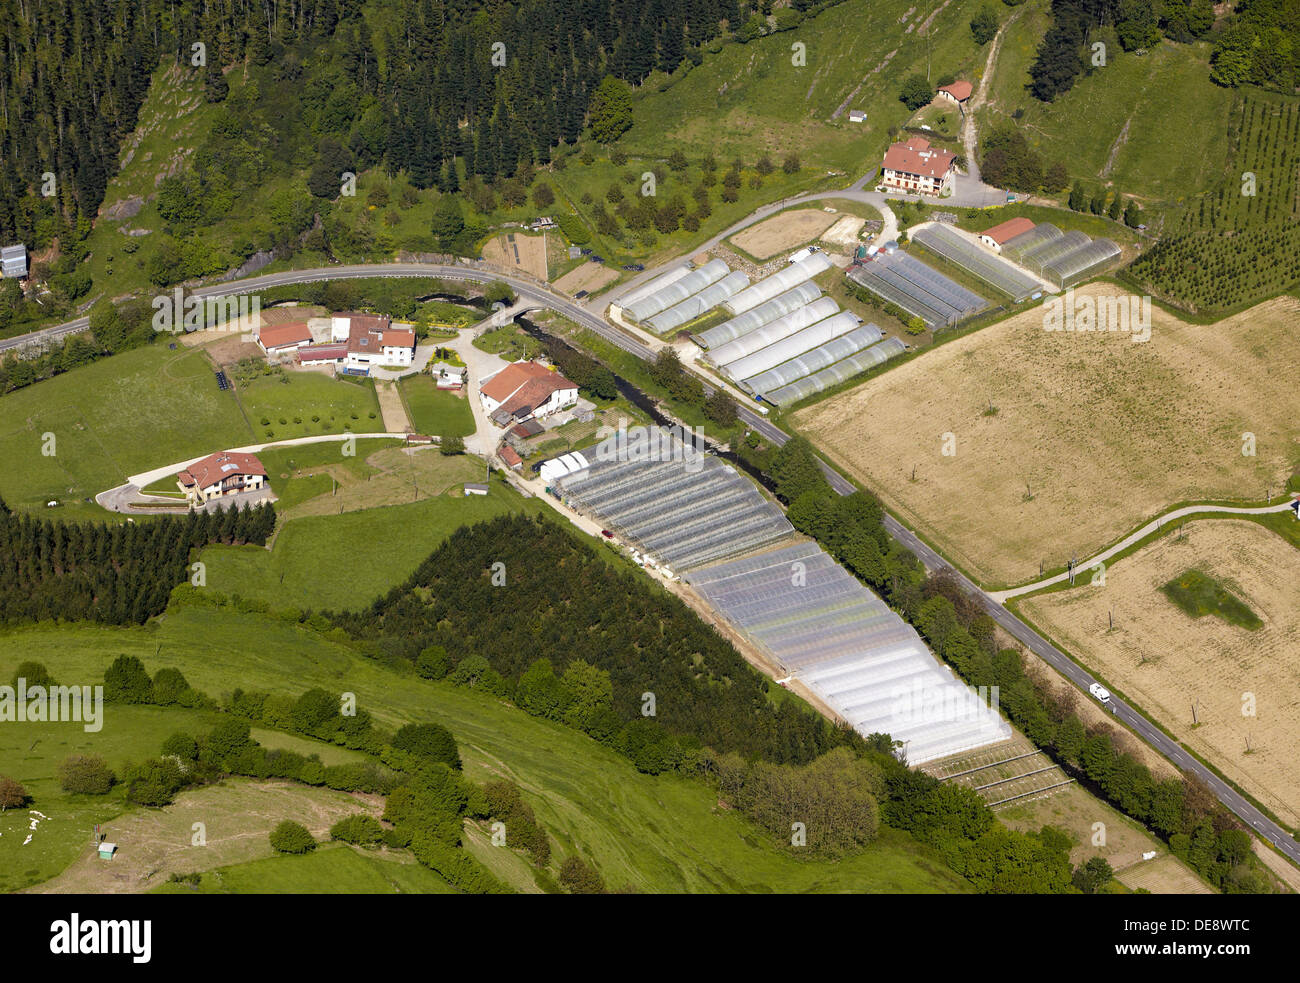 Greenhouses, Nuarbe, Azpeitia, Guipuzcoa, Basque Country, Spain - Stock Image